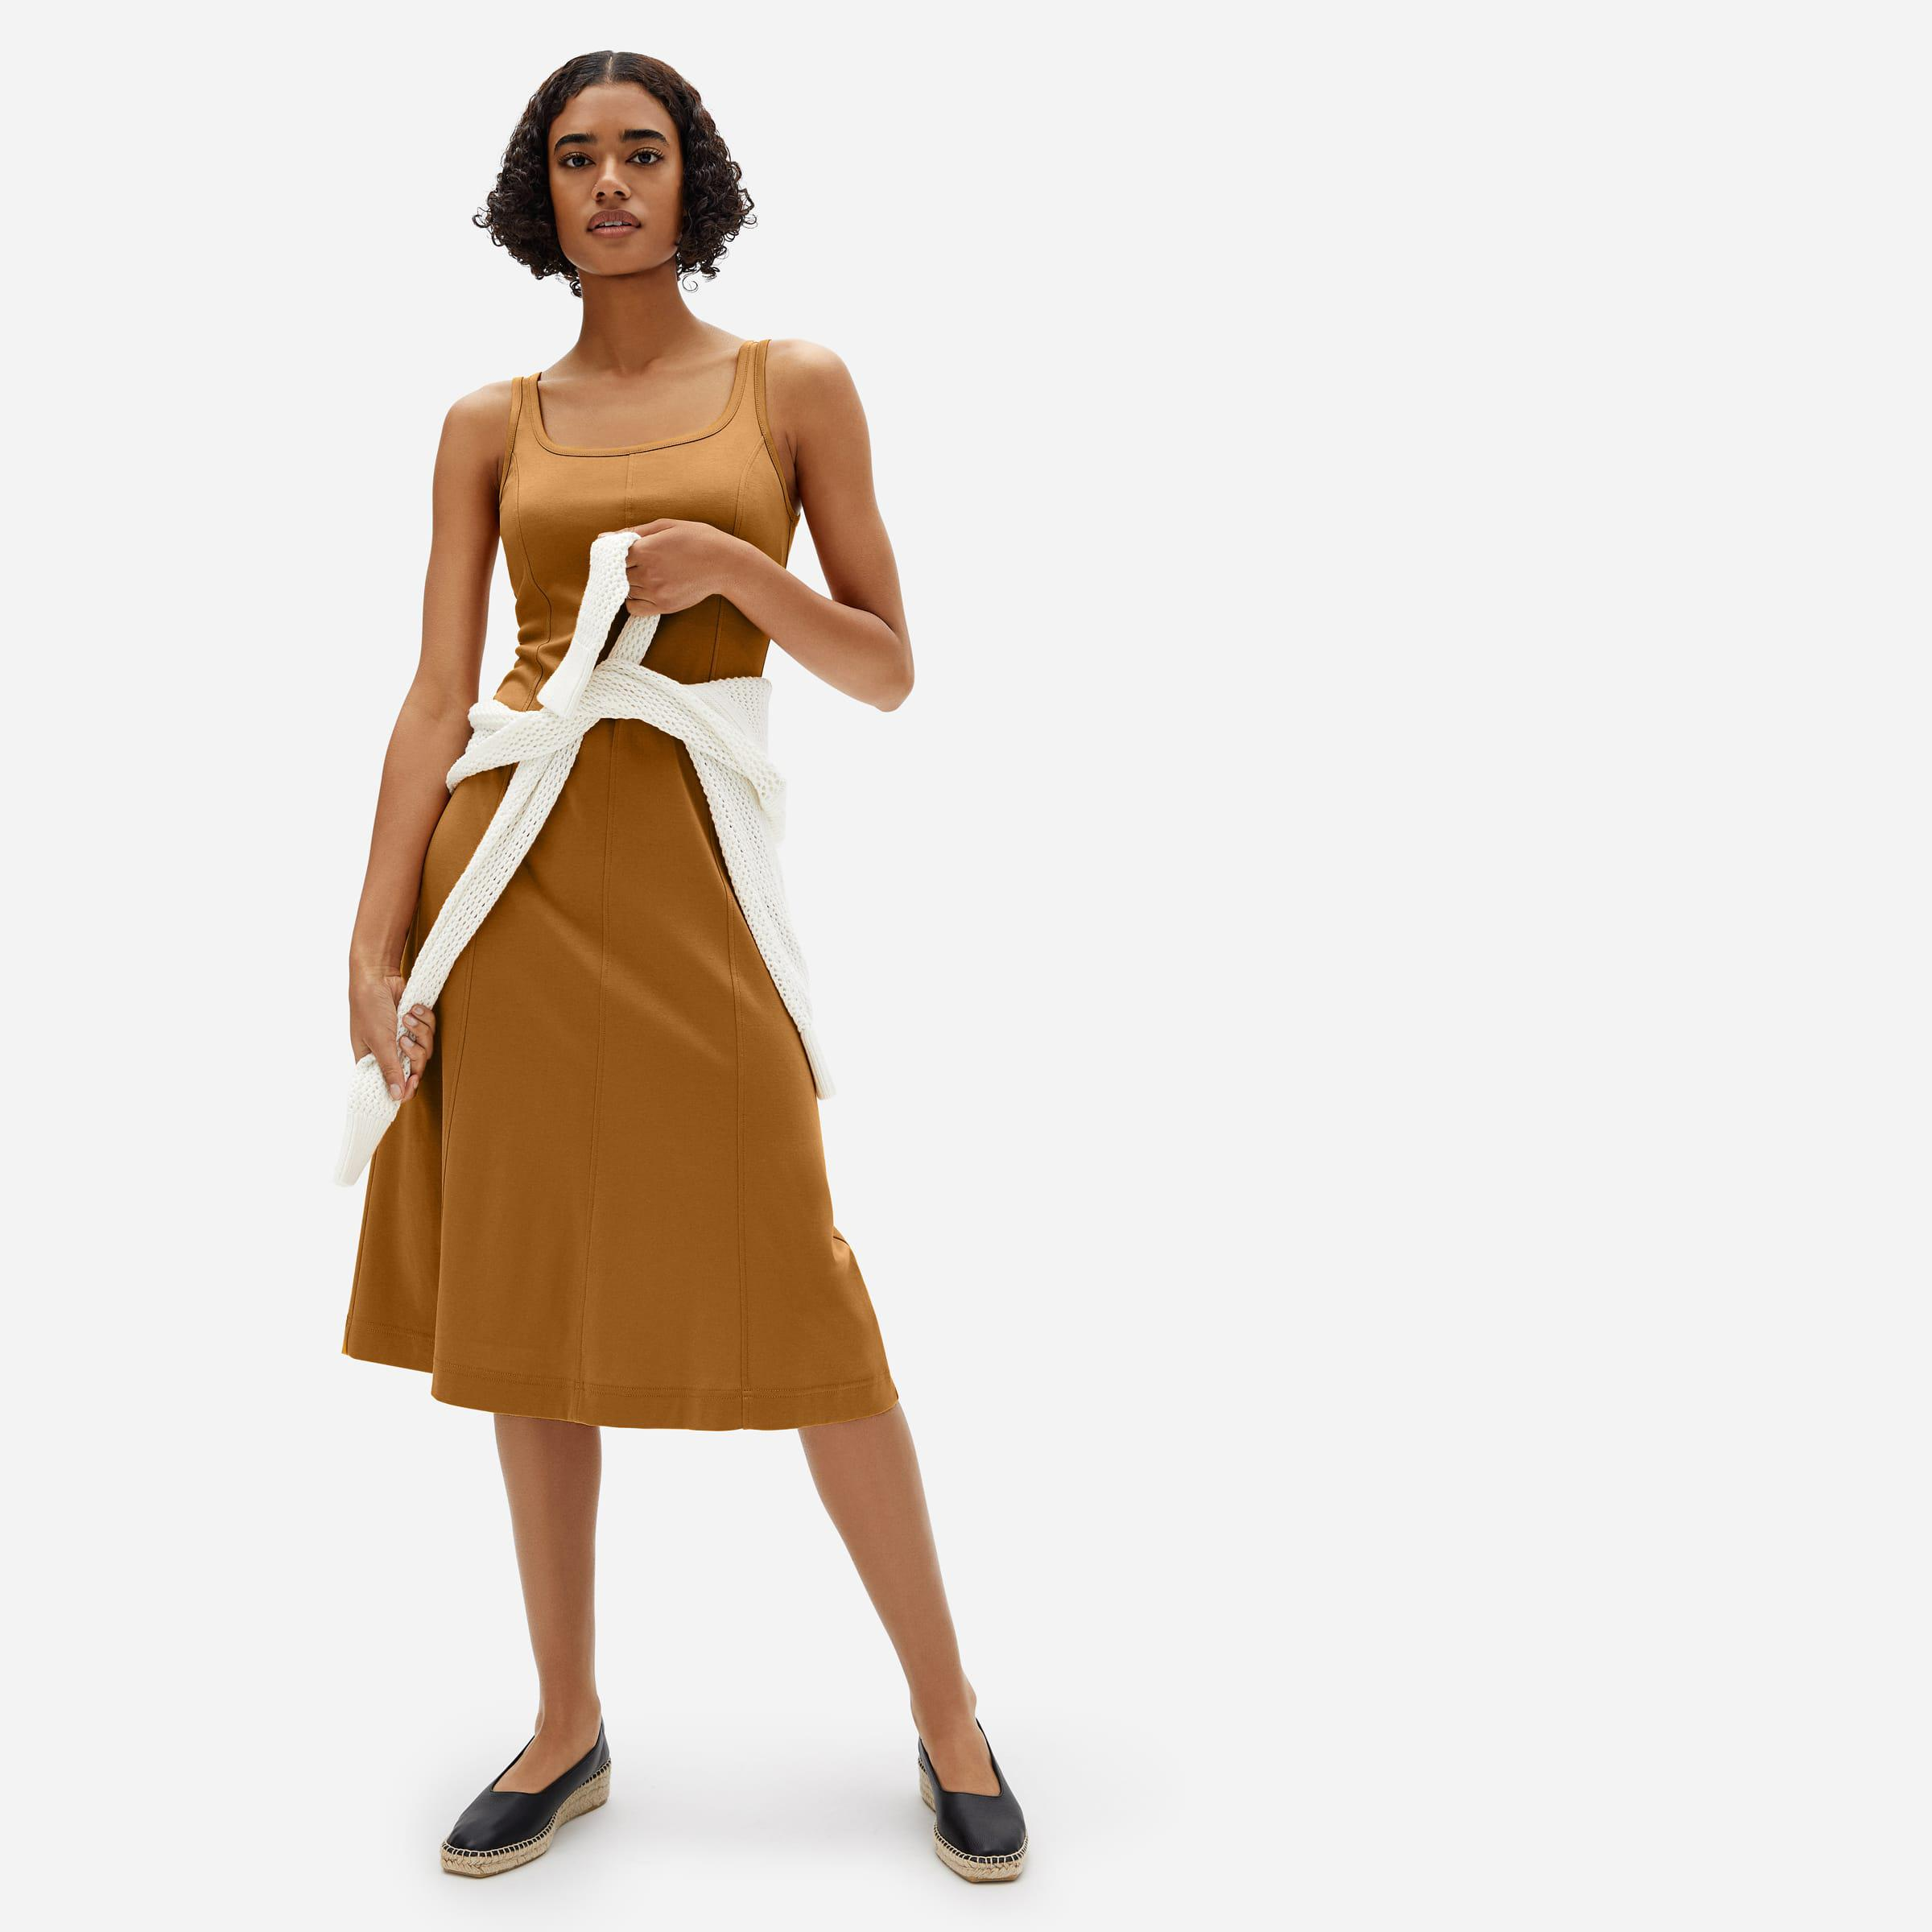 The Luxe Cotton Seamed Tank Dress